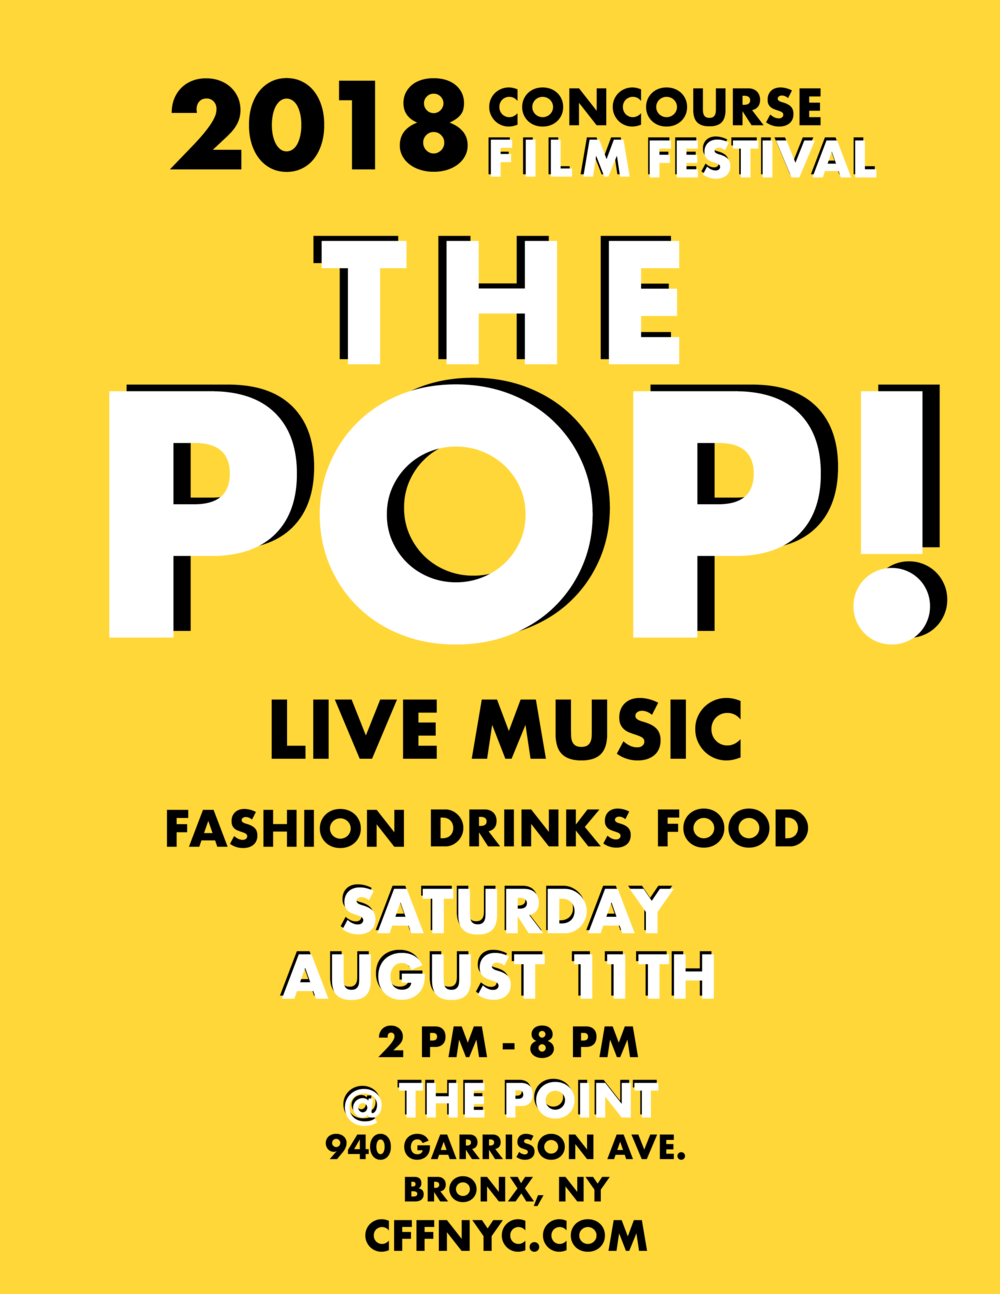 THE POP! - We are excited to announce the Concourse Film Festival's: THE POP!This Bronx based pop up shop will feature businesses, entrepreneurs, and vendors from all over New York City.  Come see what The Bronx has to offer. With special live performances, music, food, drinks, original brands, social services and live art. The Pop! will be an event NO ONE in NYC should miss. For a chance to win amazing prizes, RSVP to The Pop!